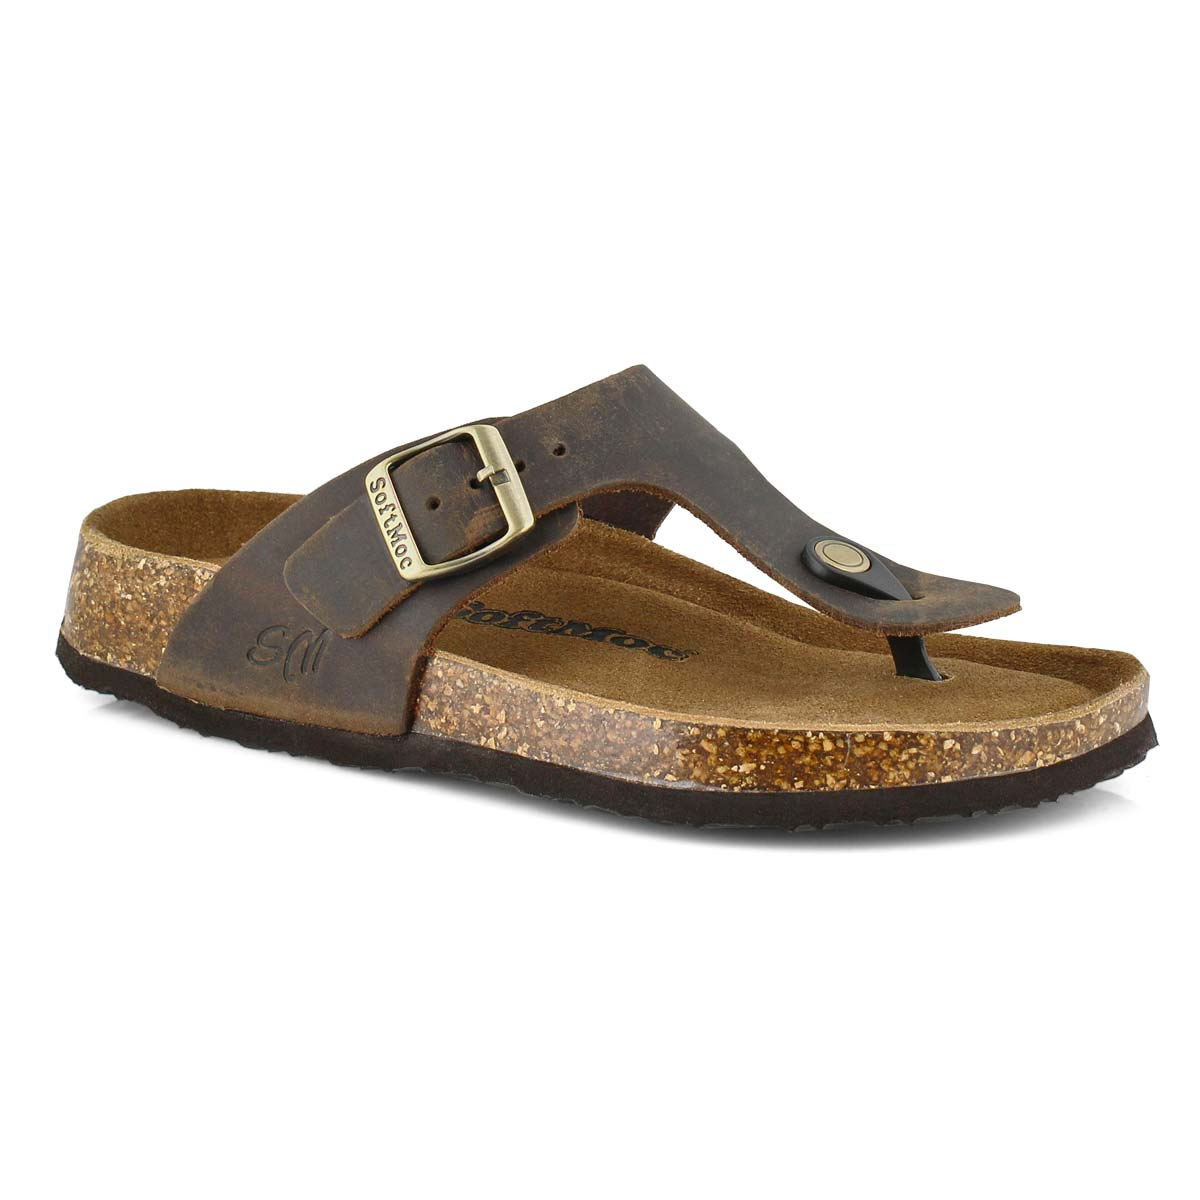 Women's ANGY 5 brown memory foam thong sandals